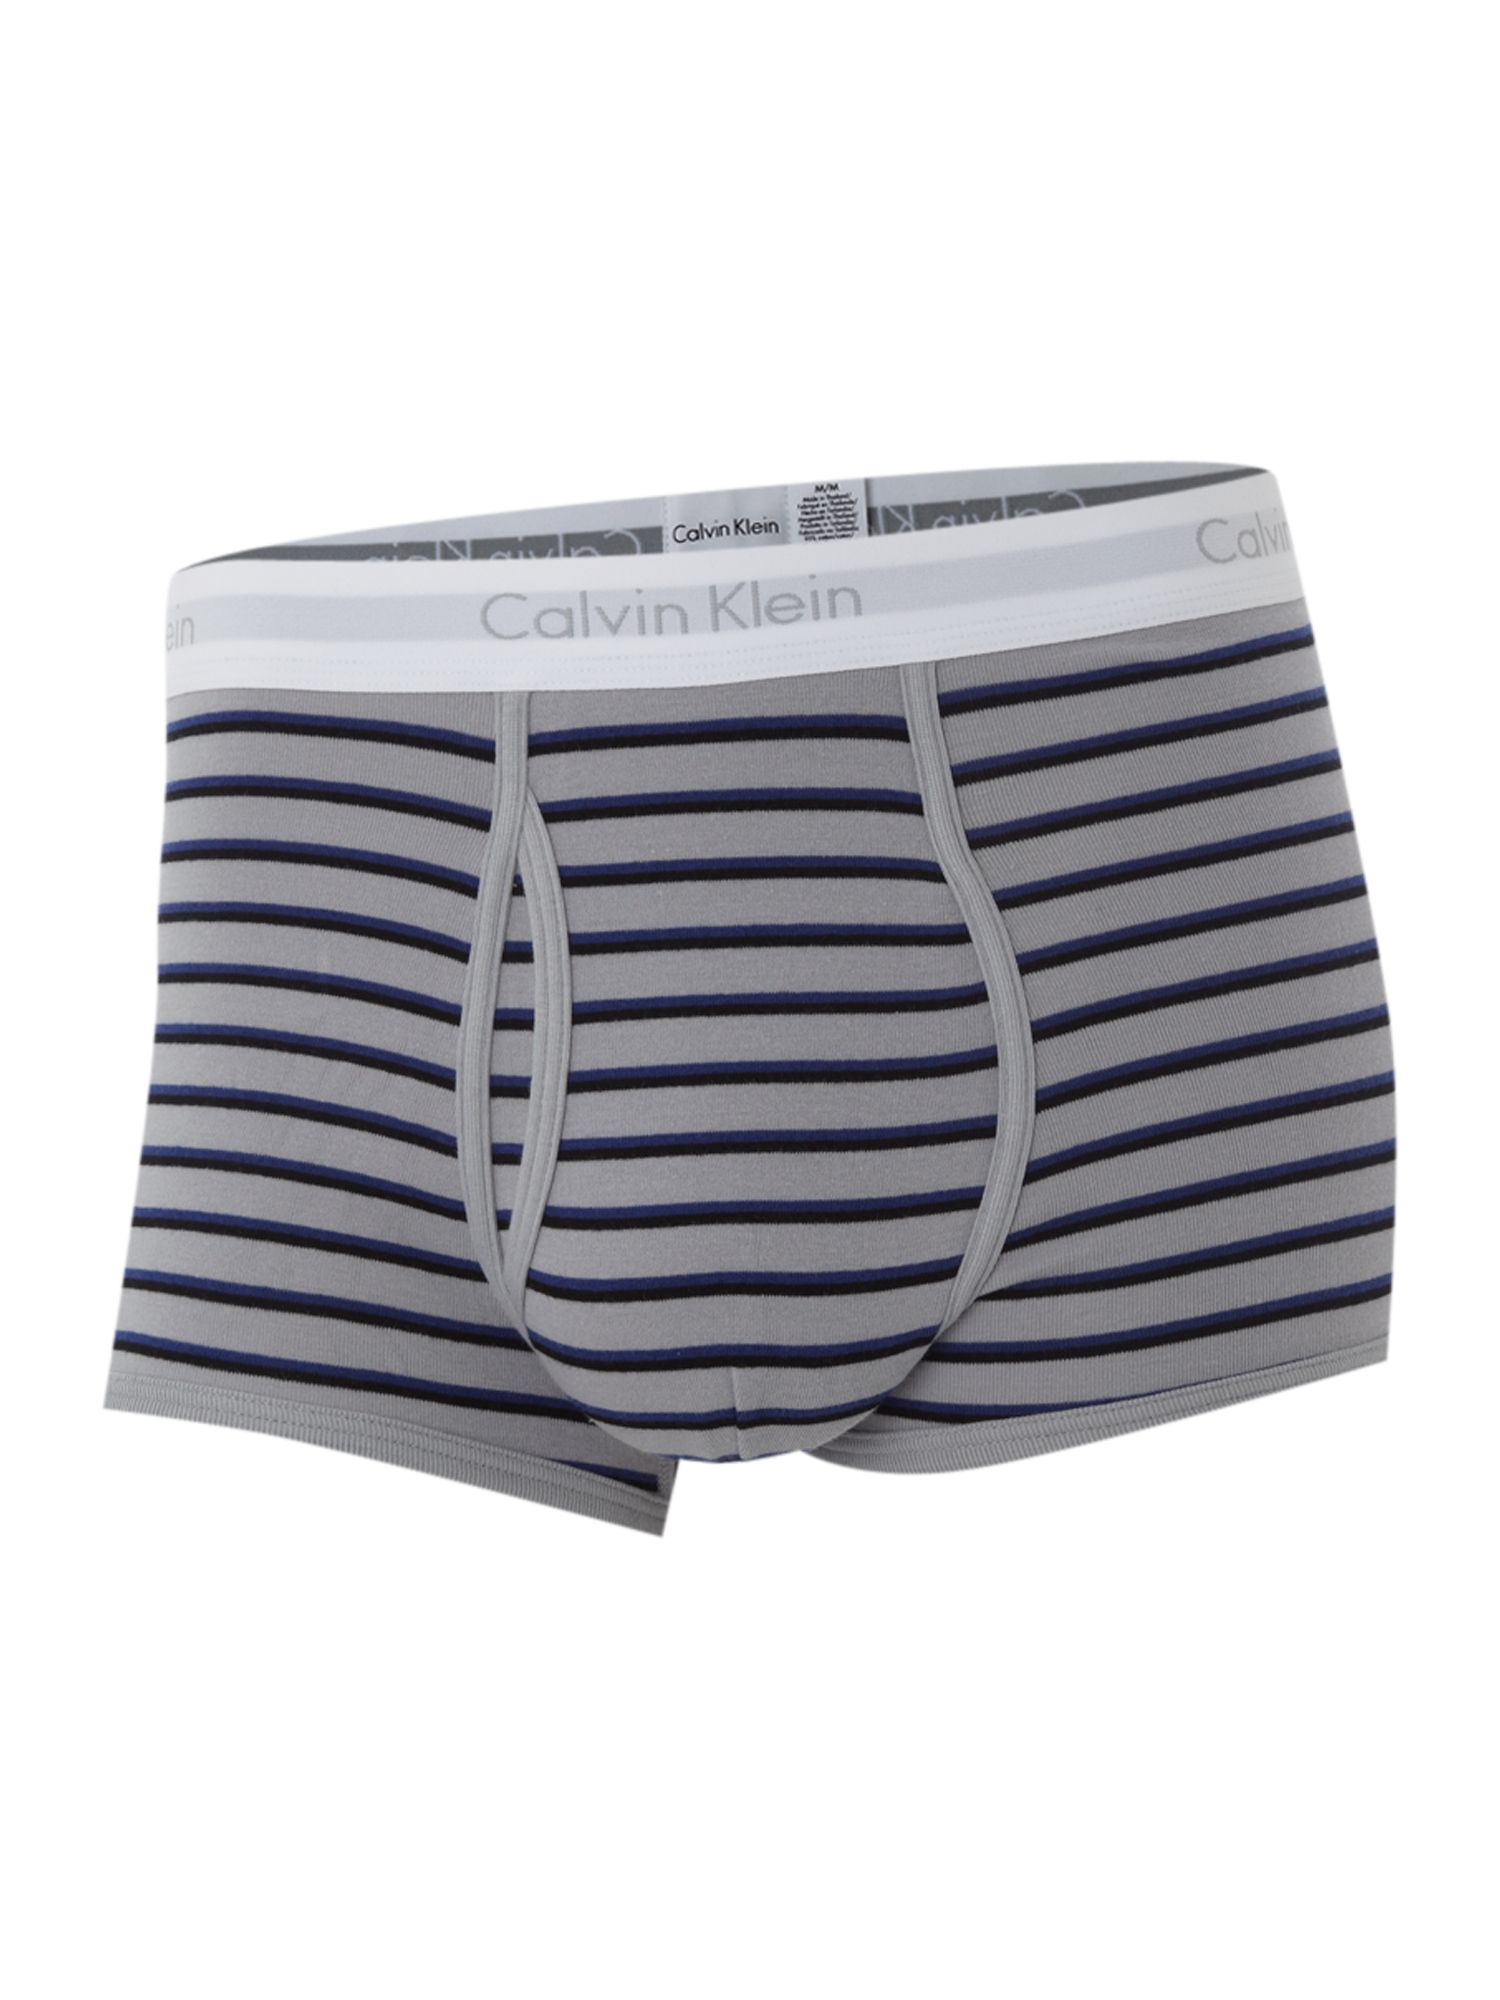 Heritage cotton underwear trunk